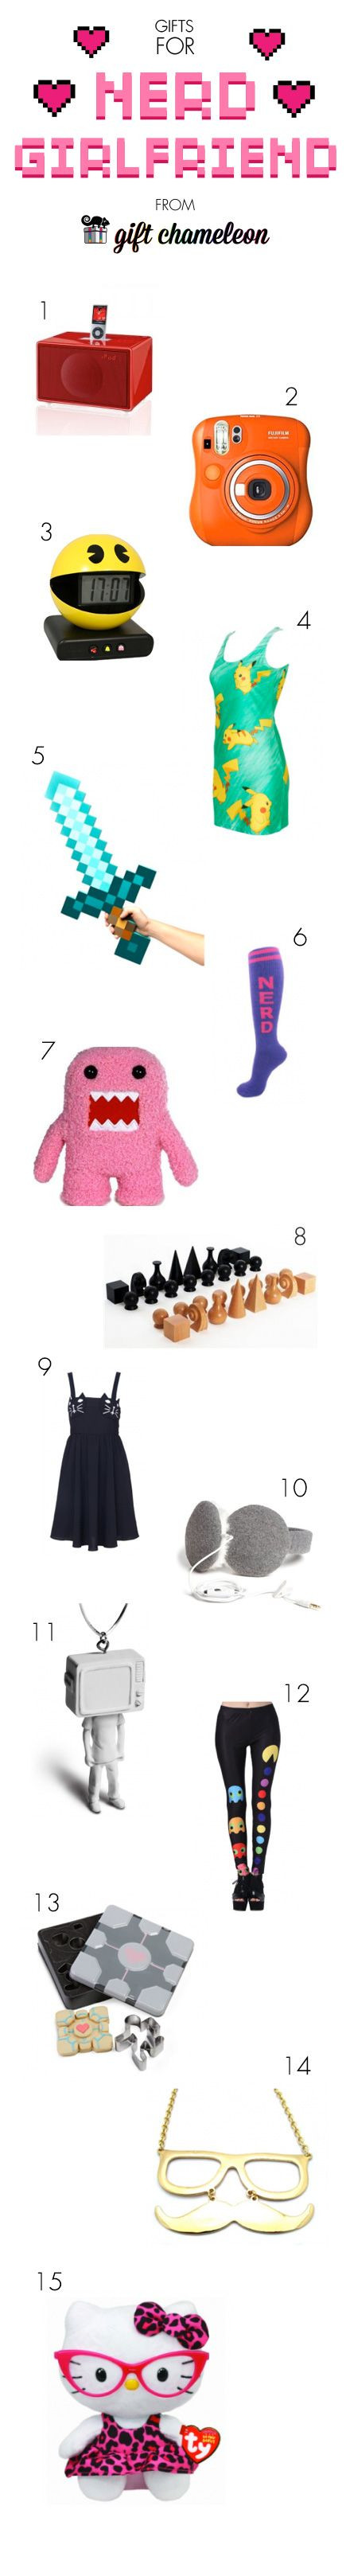 Best ideas about Gift Ideas For Tomboys . Save or Pin 10 images about Gift Ideas for Girlfriends on Pinterest Now.